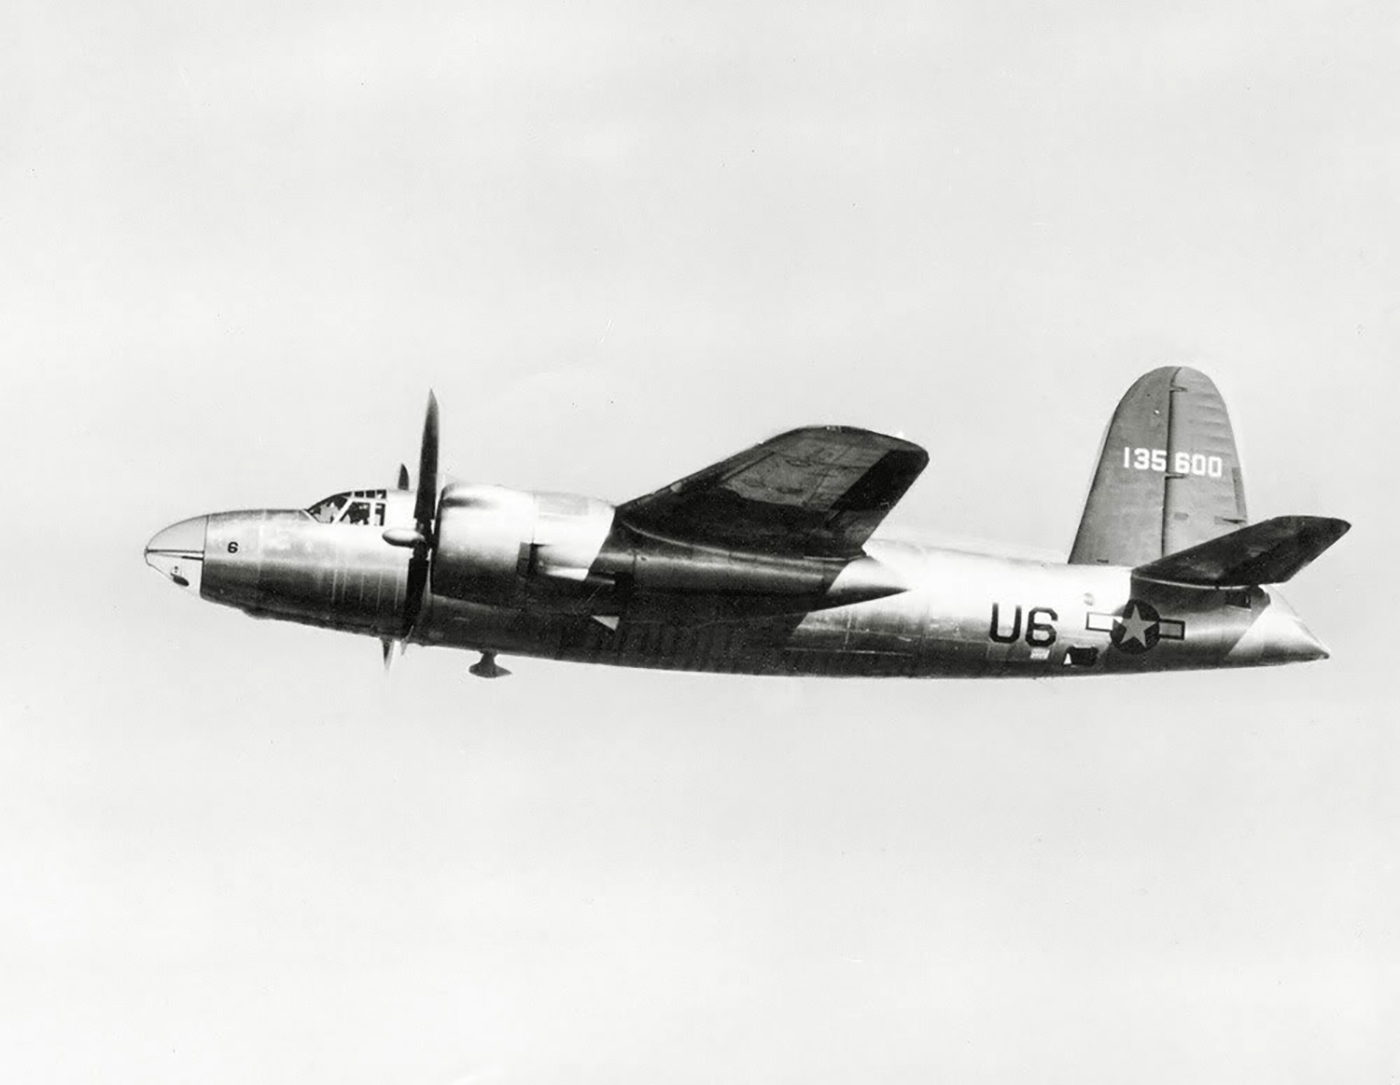 USAAF 41 35600 B 26C Marauder transfered to the USN as AT 23B 01